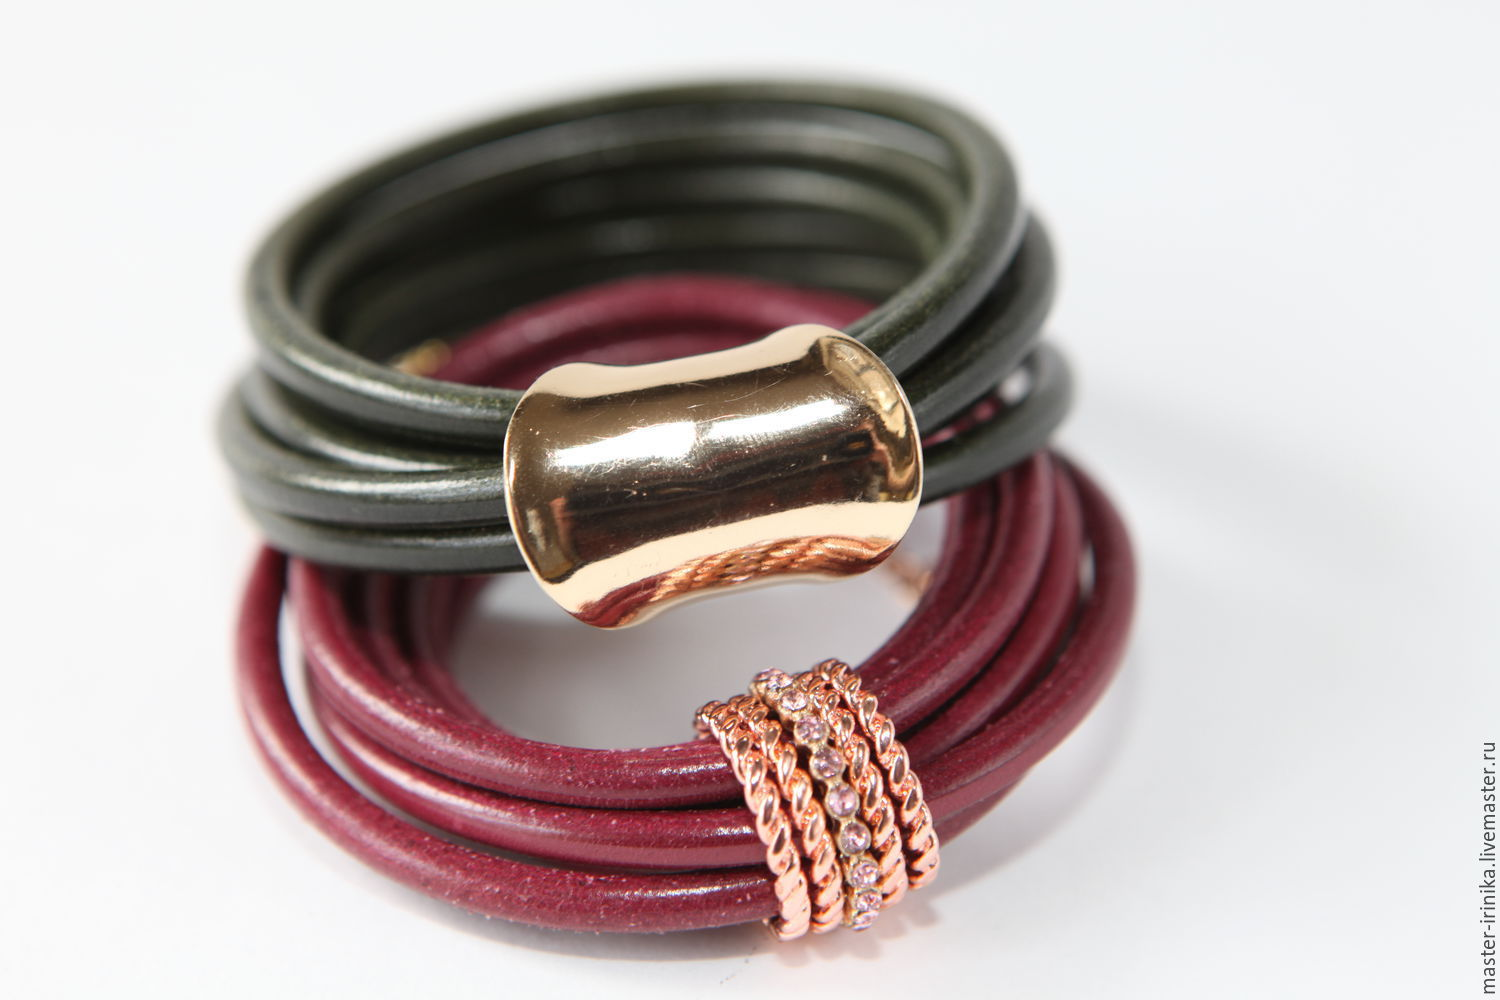 Bracelet handmade `Elegance` with rings from the collection Accessorize. Available in two colors, garnet and bottle. Iranica. Workshop images Irina N. Jewelry crafted